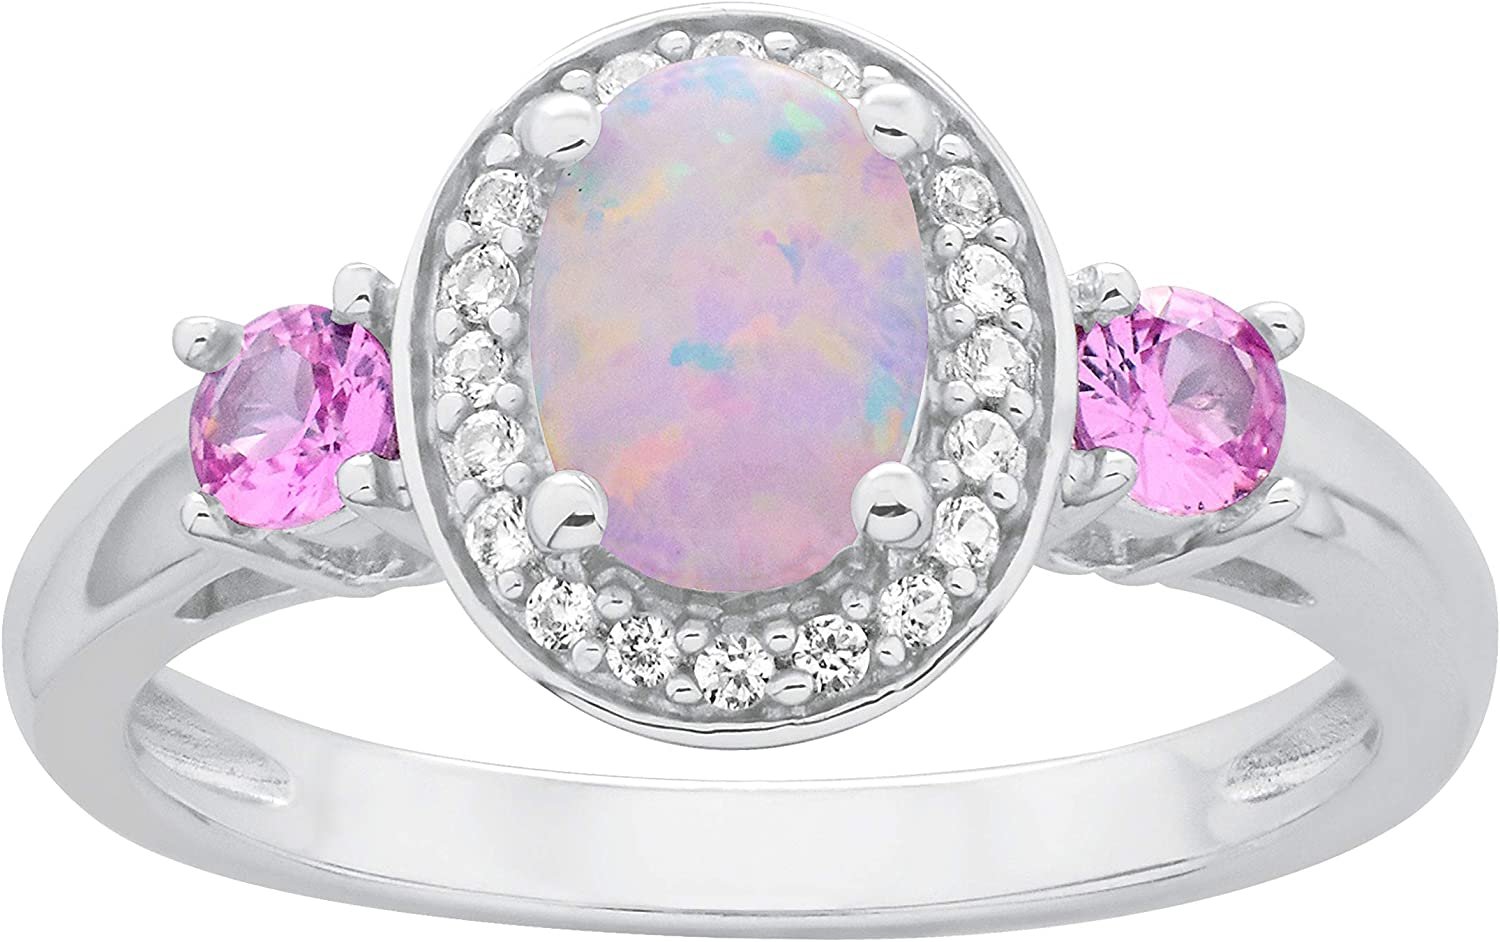 High quality new .925 Sterling Silver Oval Lab-Grown Ranking TOP6 Opal White Lab-G Cabochon